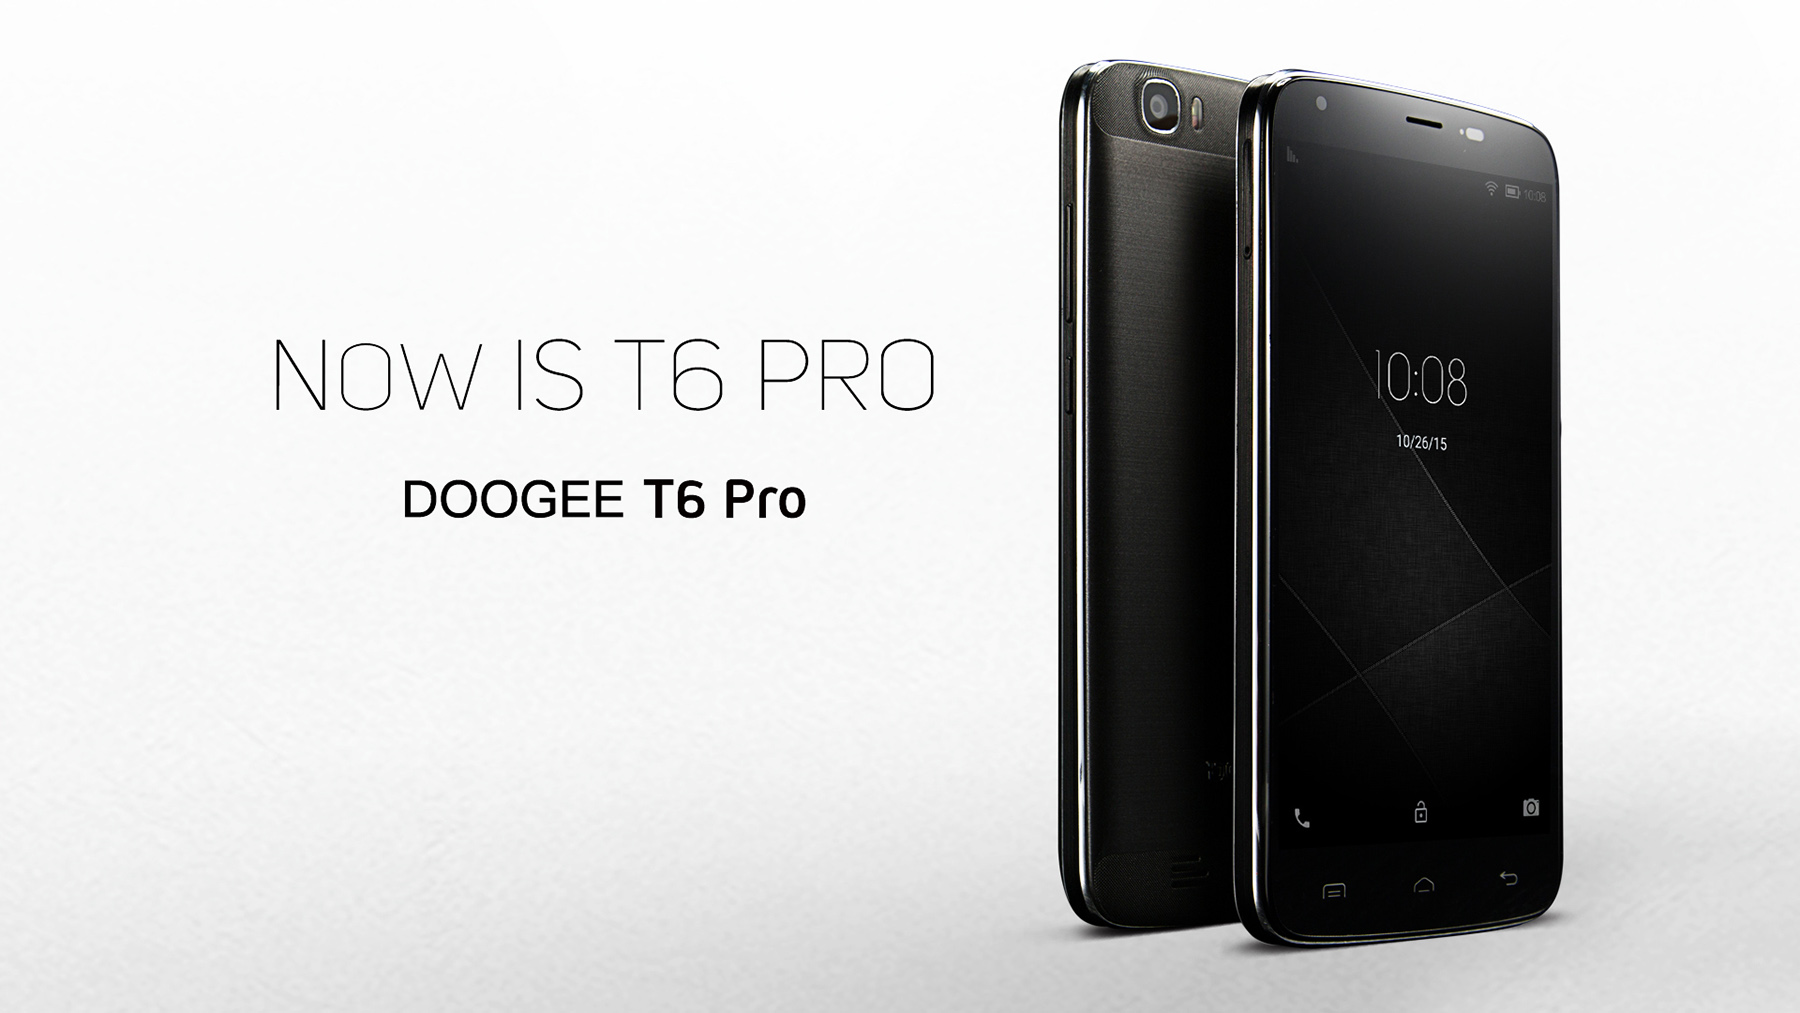 DOOGEE T6 Pro 5.5 inch 4G Phablet Android 6.0 MTK6753 64bit Octa Core 1.5GHz OTA Hotknot 3GB + 32GB 13.0MP Main Camera HotKnot 6250mAh Battery